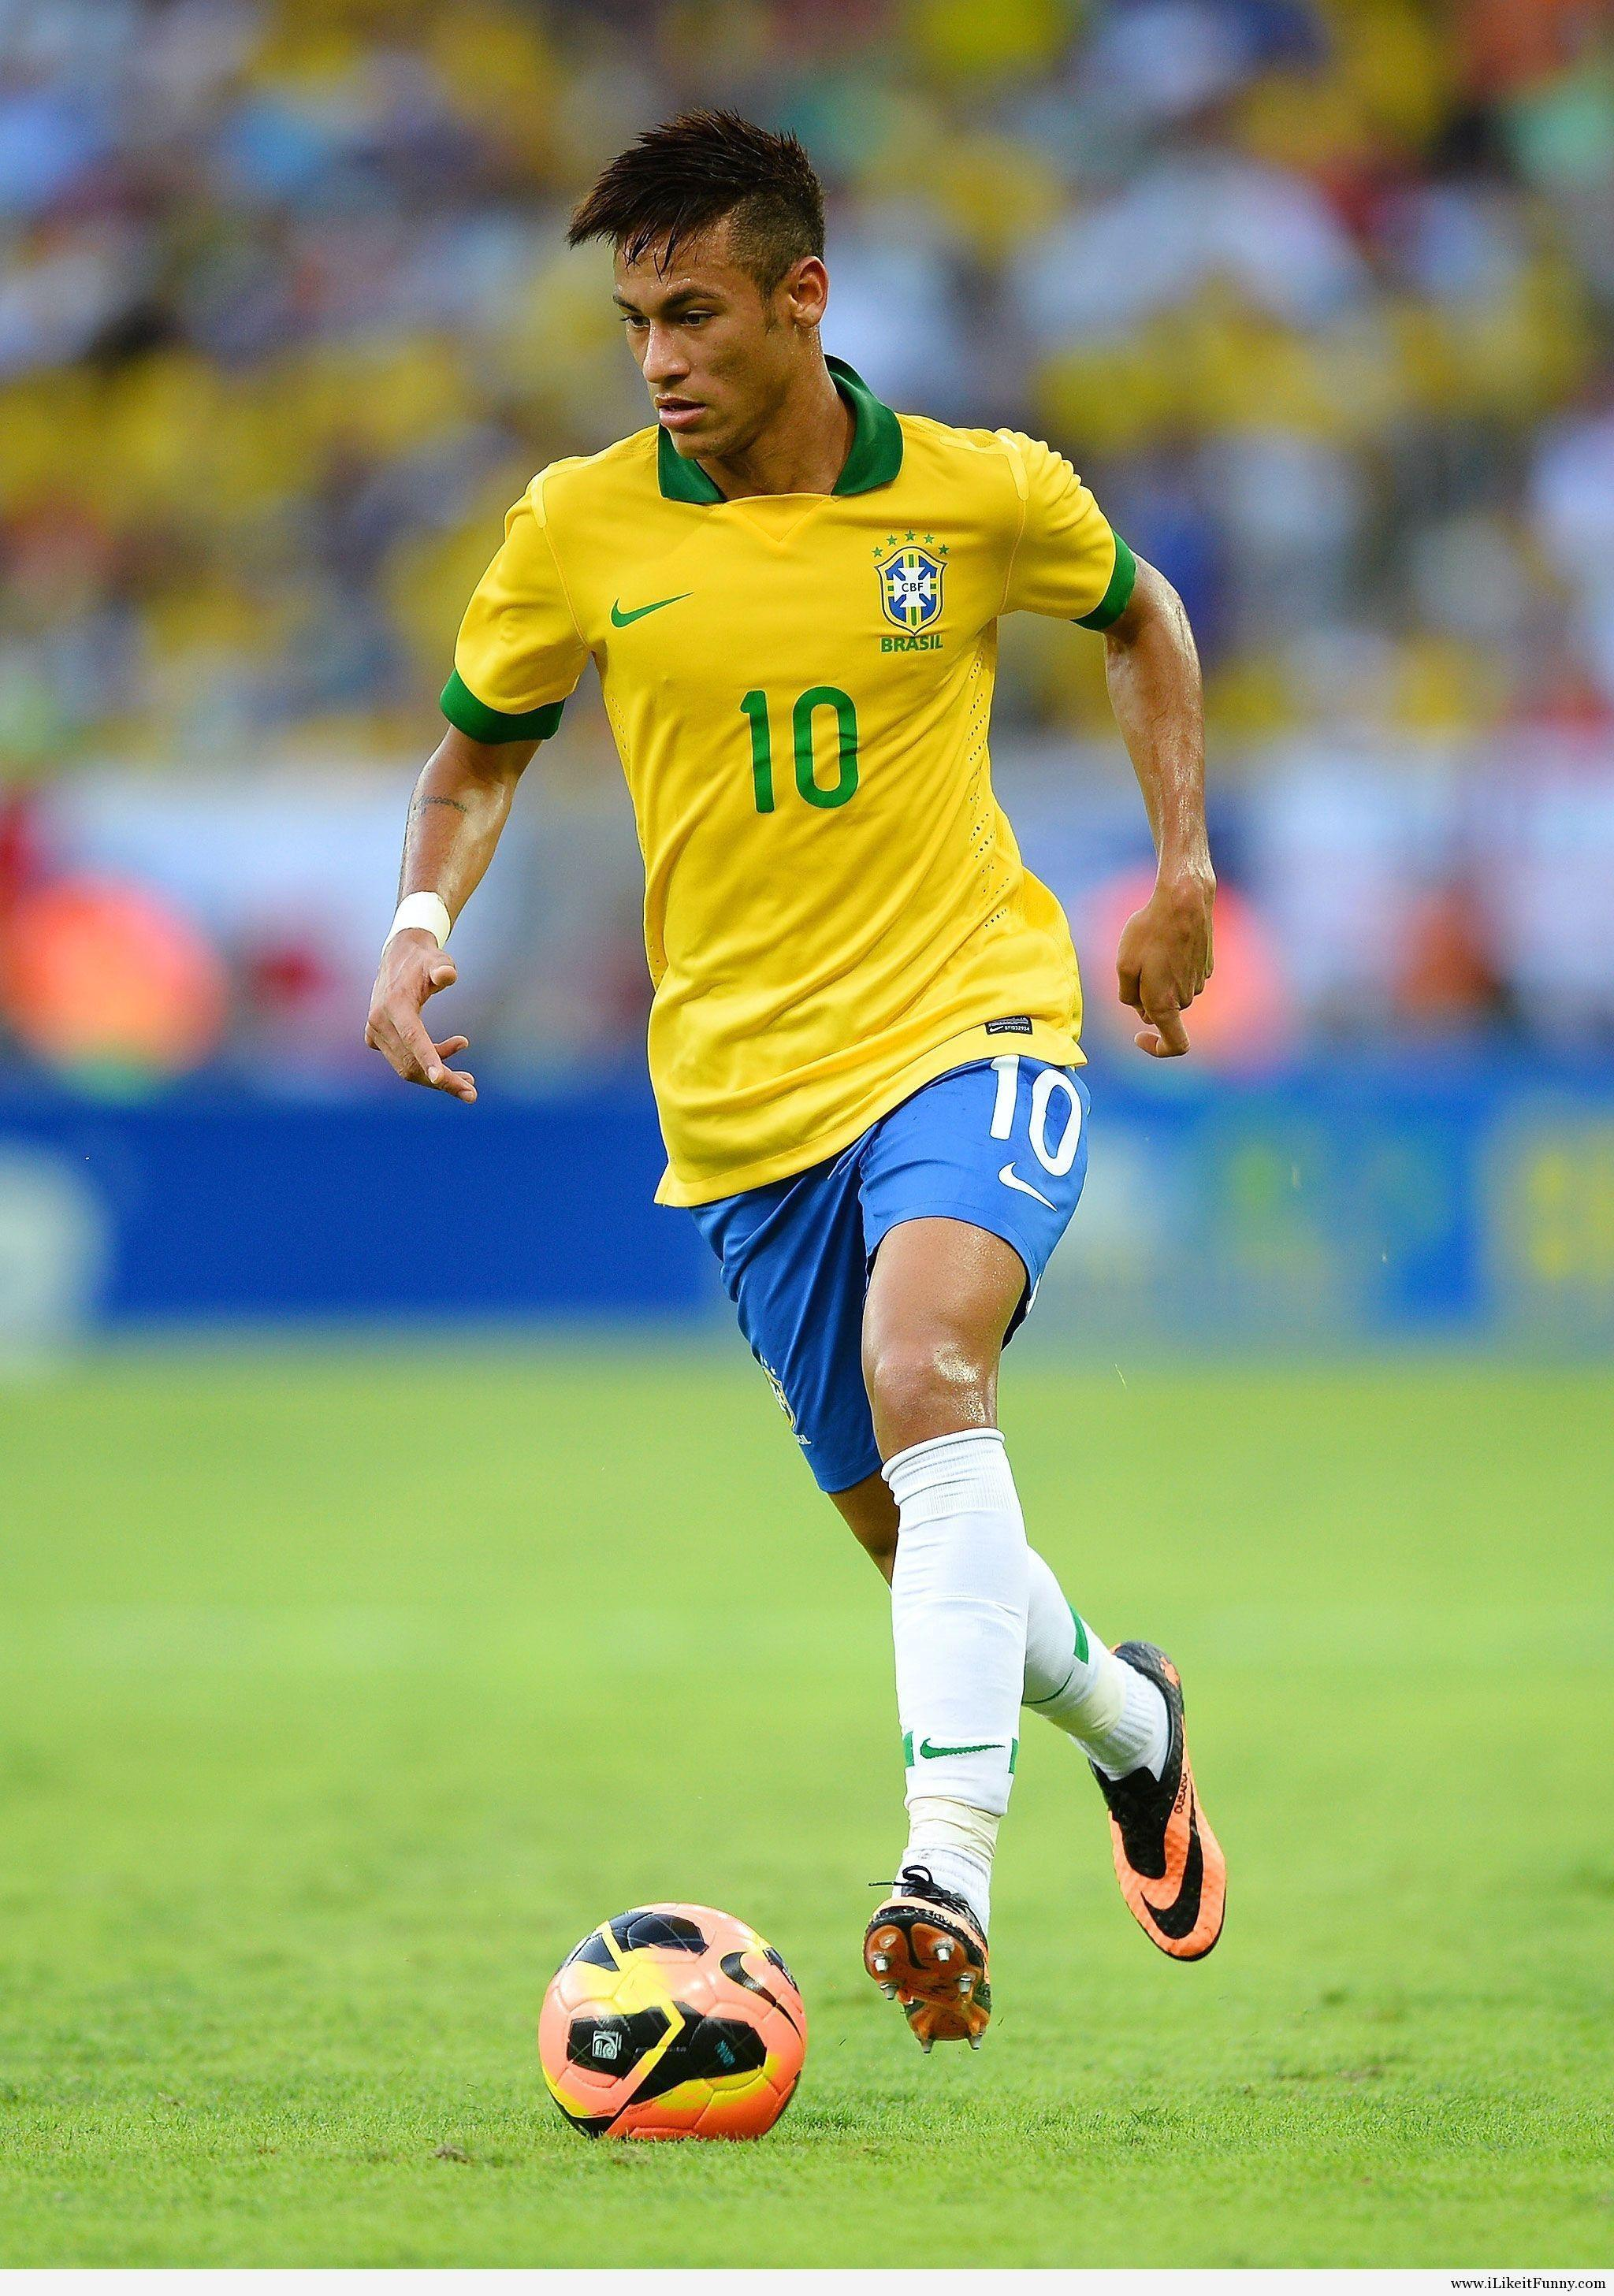 Neymar Brazil Wallpaper 2018 HD (74+ images)